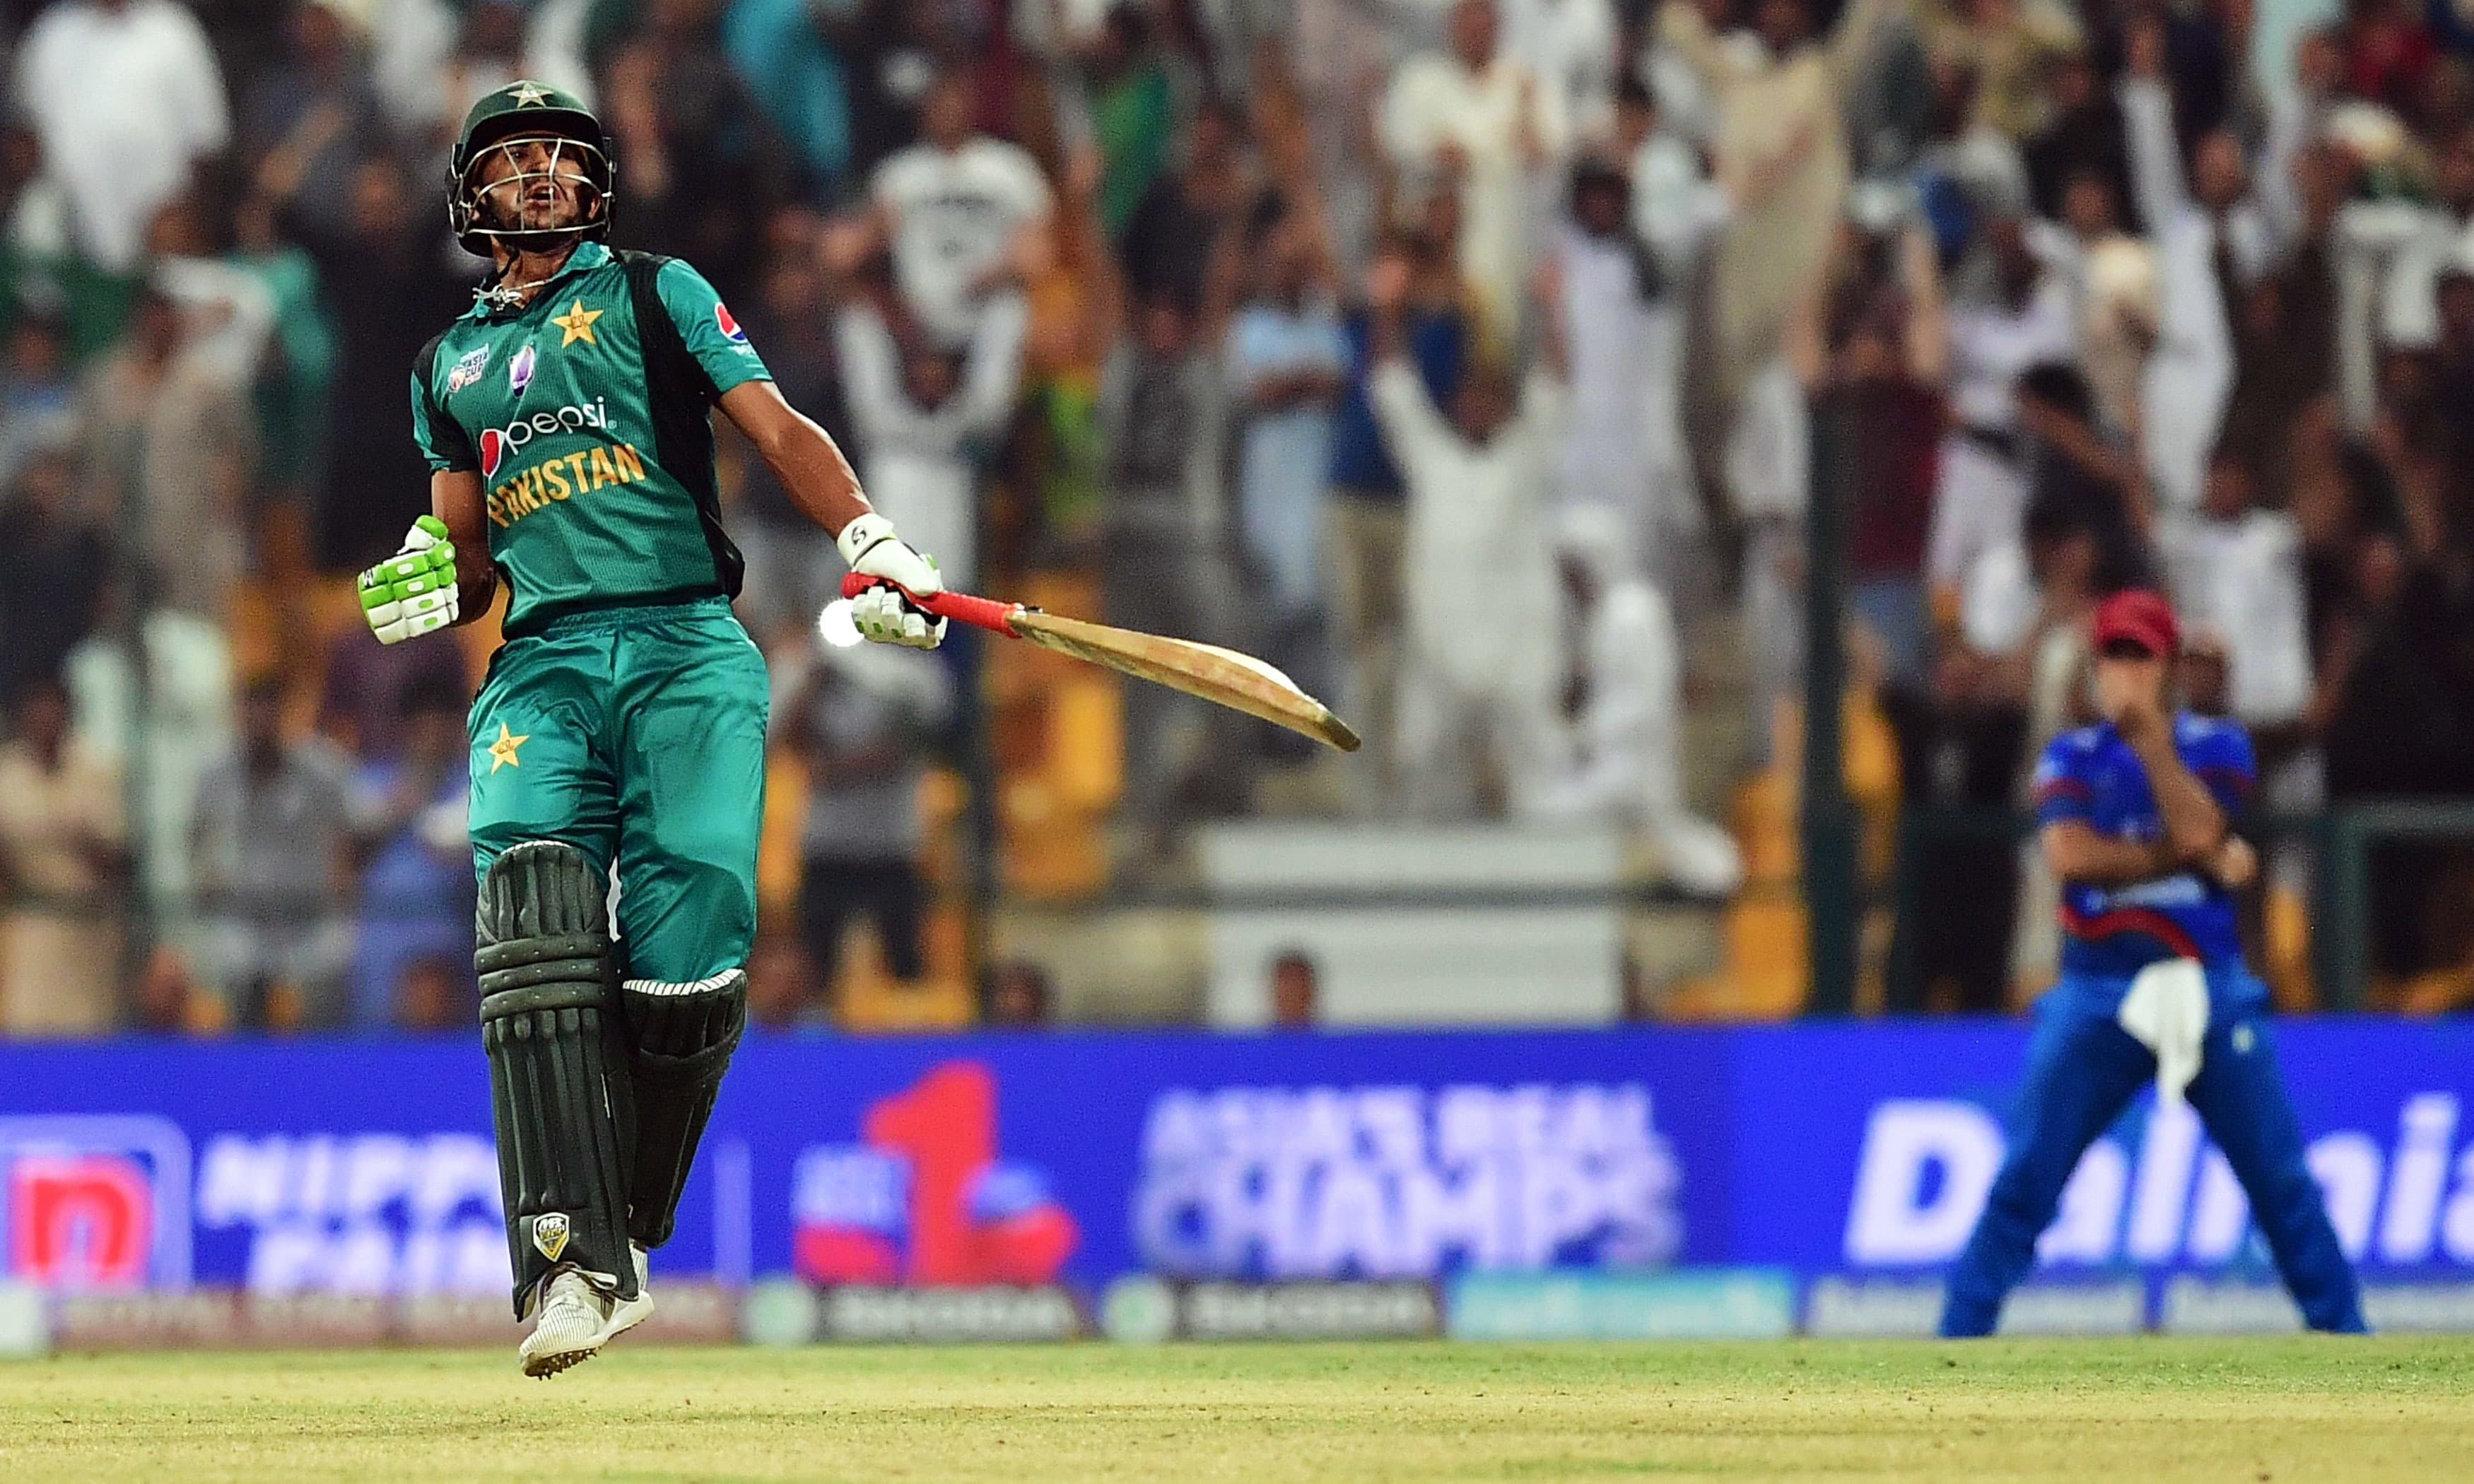 Pakistan's Hasan Ali celebrates at the end of the match during the one day international (ODI) Asia Cup cricket match between Pakistan and Afghanistan at The Sheikh Zayed Stadium in Abu Dhabi on September 21, 2018. (Photo by GIUSEPPE CACACE / AFP) — AFP or licensors